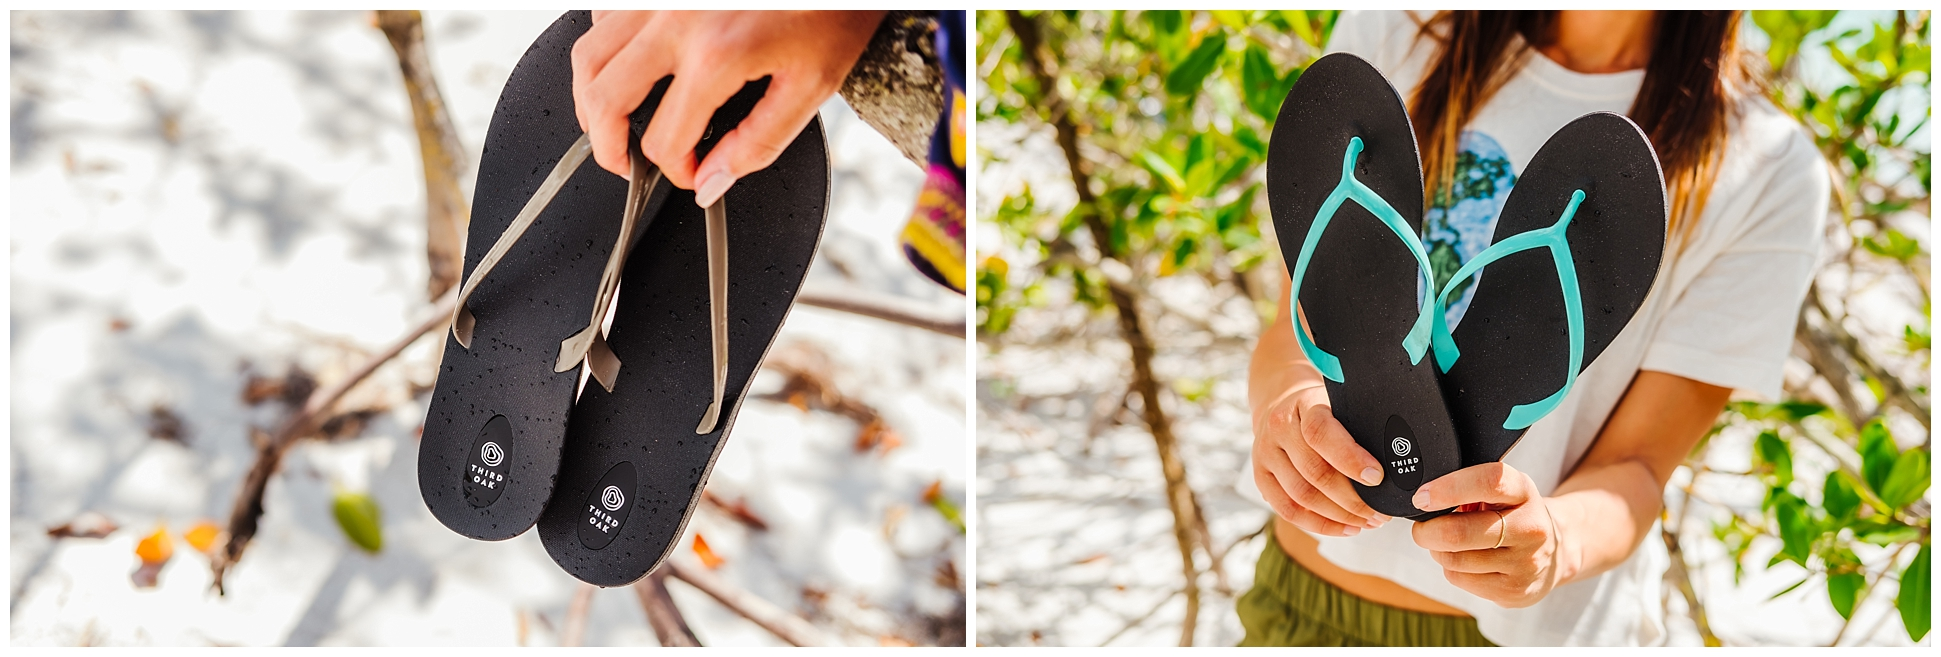 third-oak-commercial-product-photography-models-longboat-key-recycled-sandals_0206.jpg